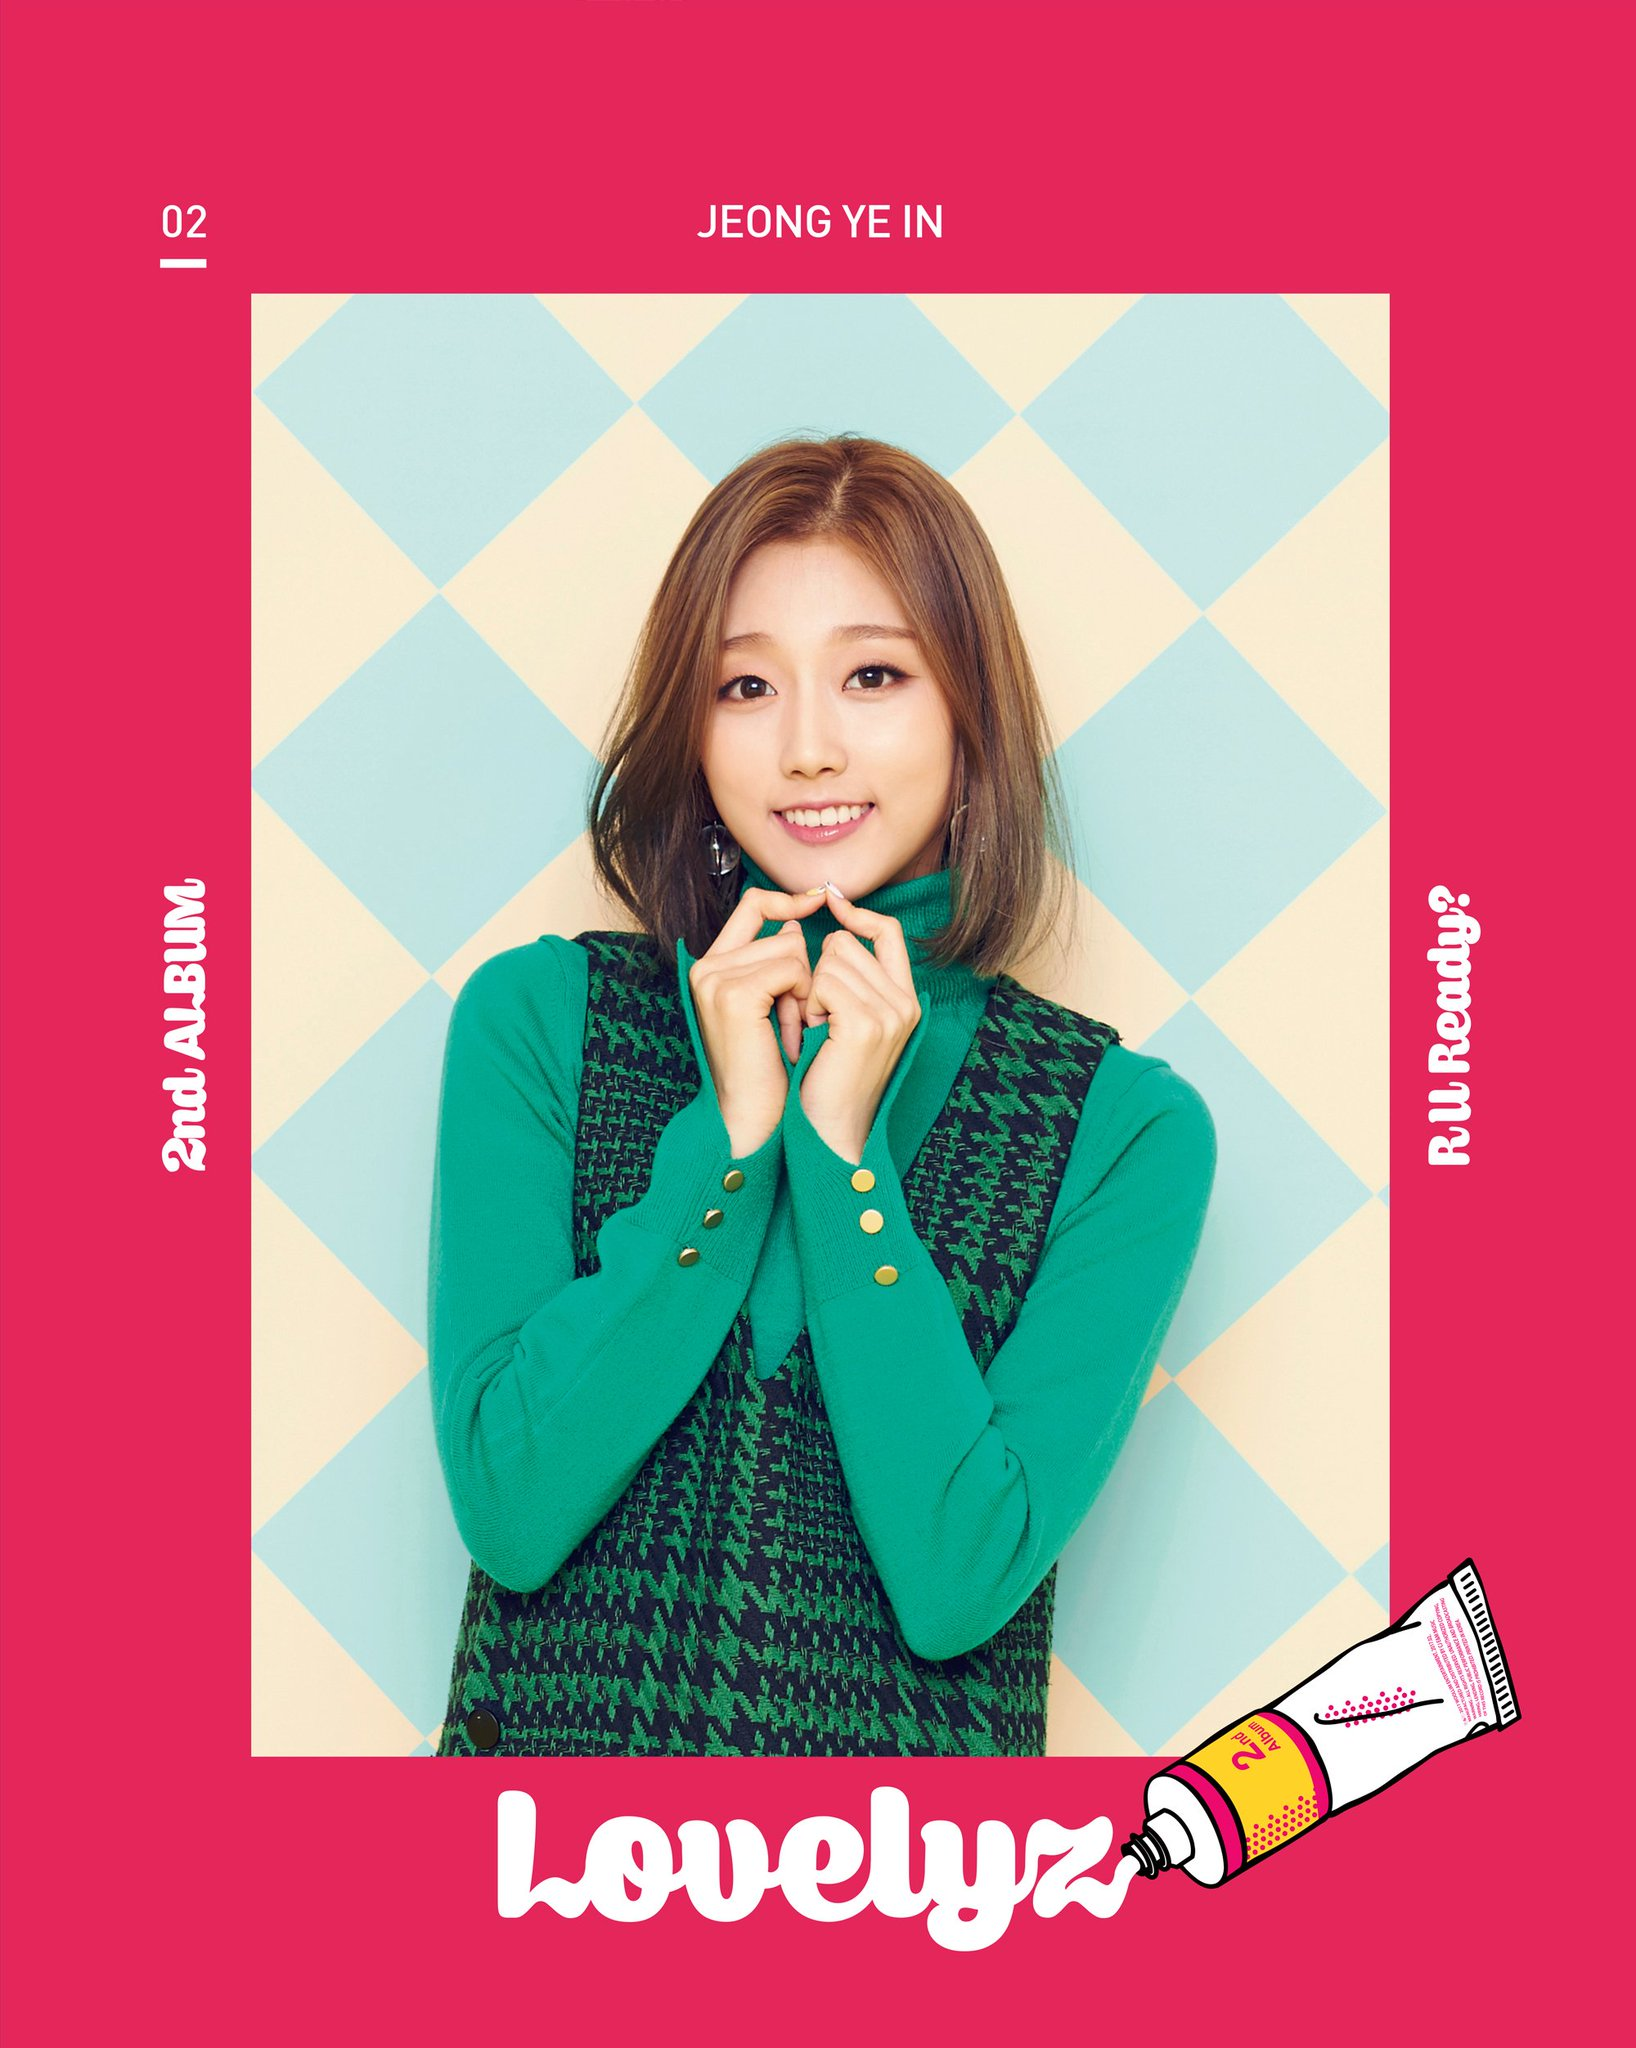 """allkpop on Twitter: """"Lovelyz' Jeong Ye In injures ankle days before comeback + may be unable to promote https://t.co/Z2nLVWm9oG… """""""